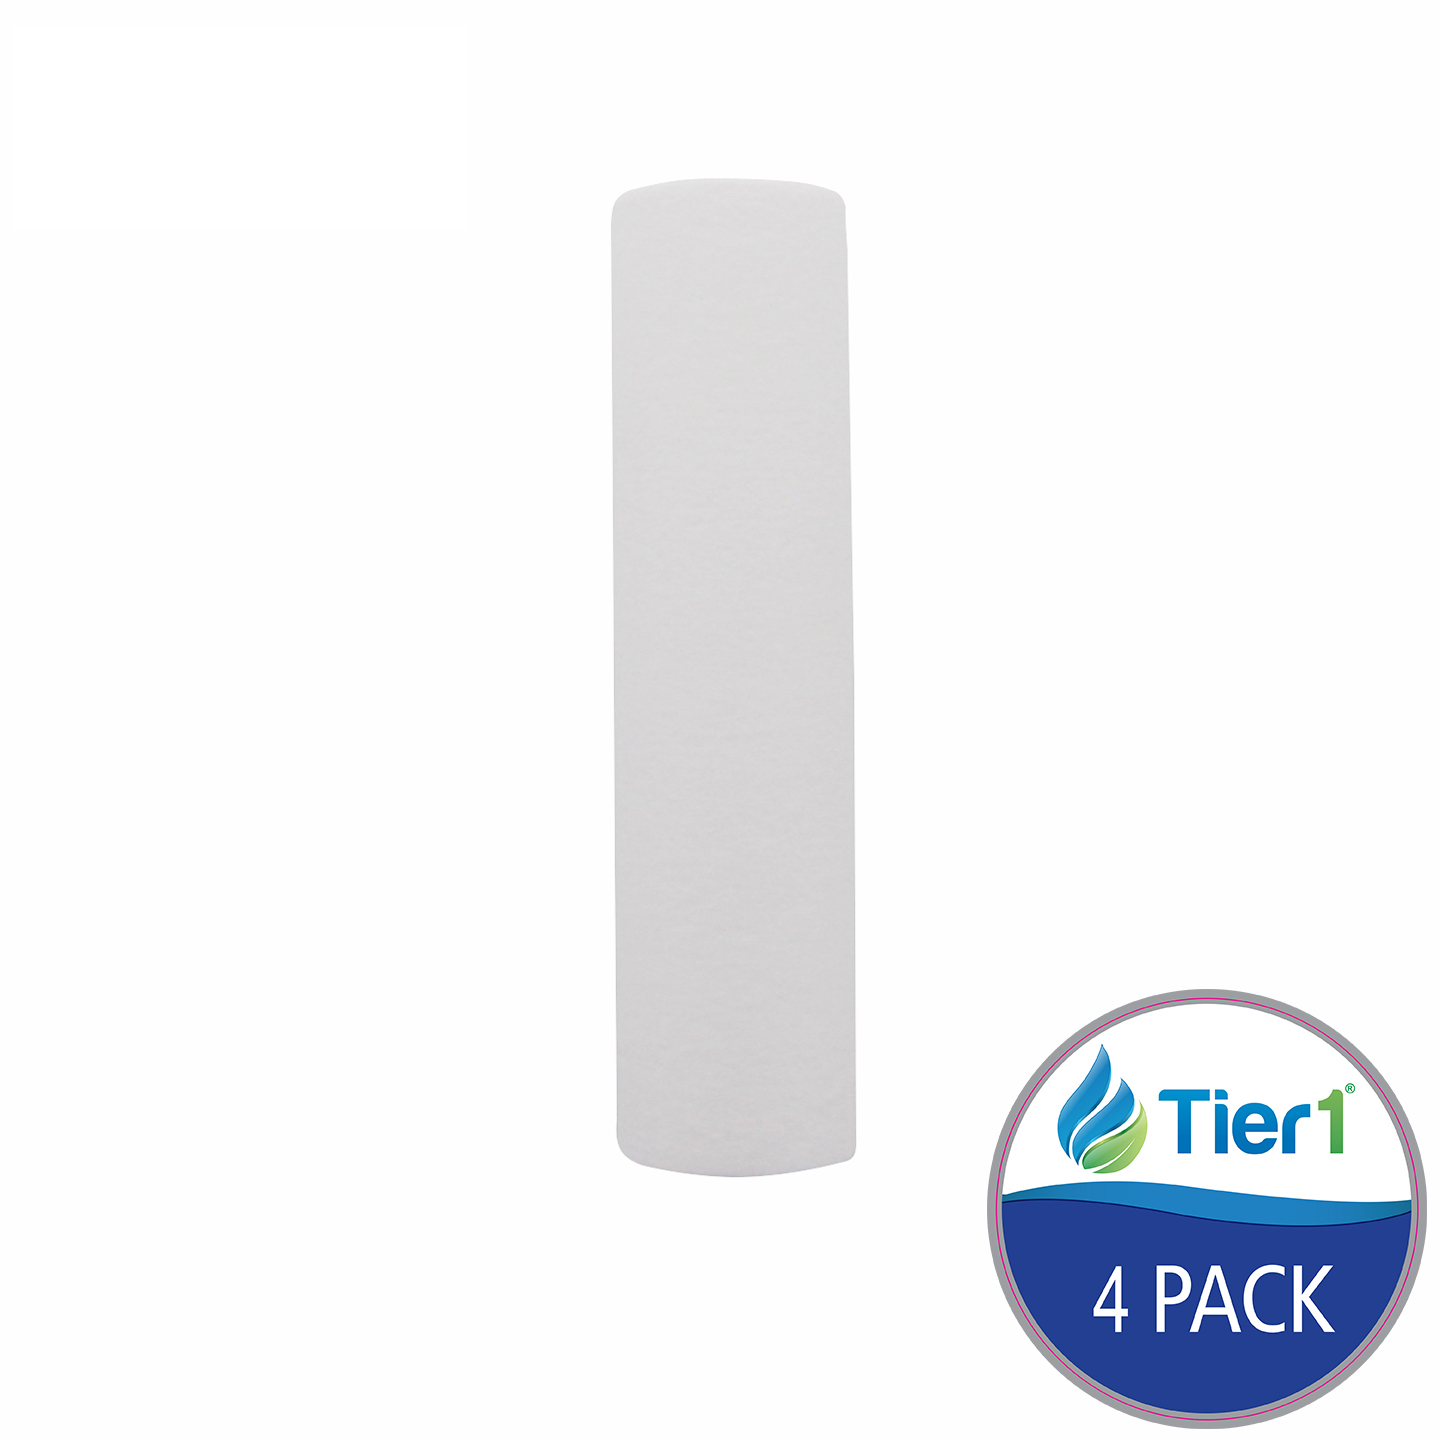 10 X 2.5 Spun Wound Polypropylene Replacement Filter by Tier1 (10 micron) (4-Pack) TIER1_P10_10_4_PACK